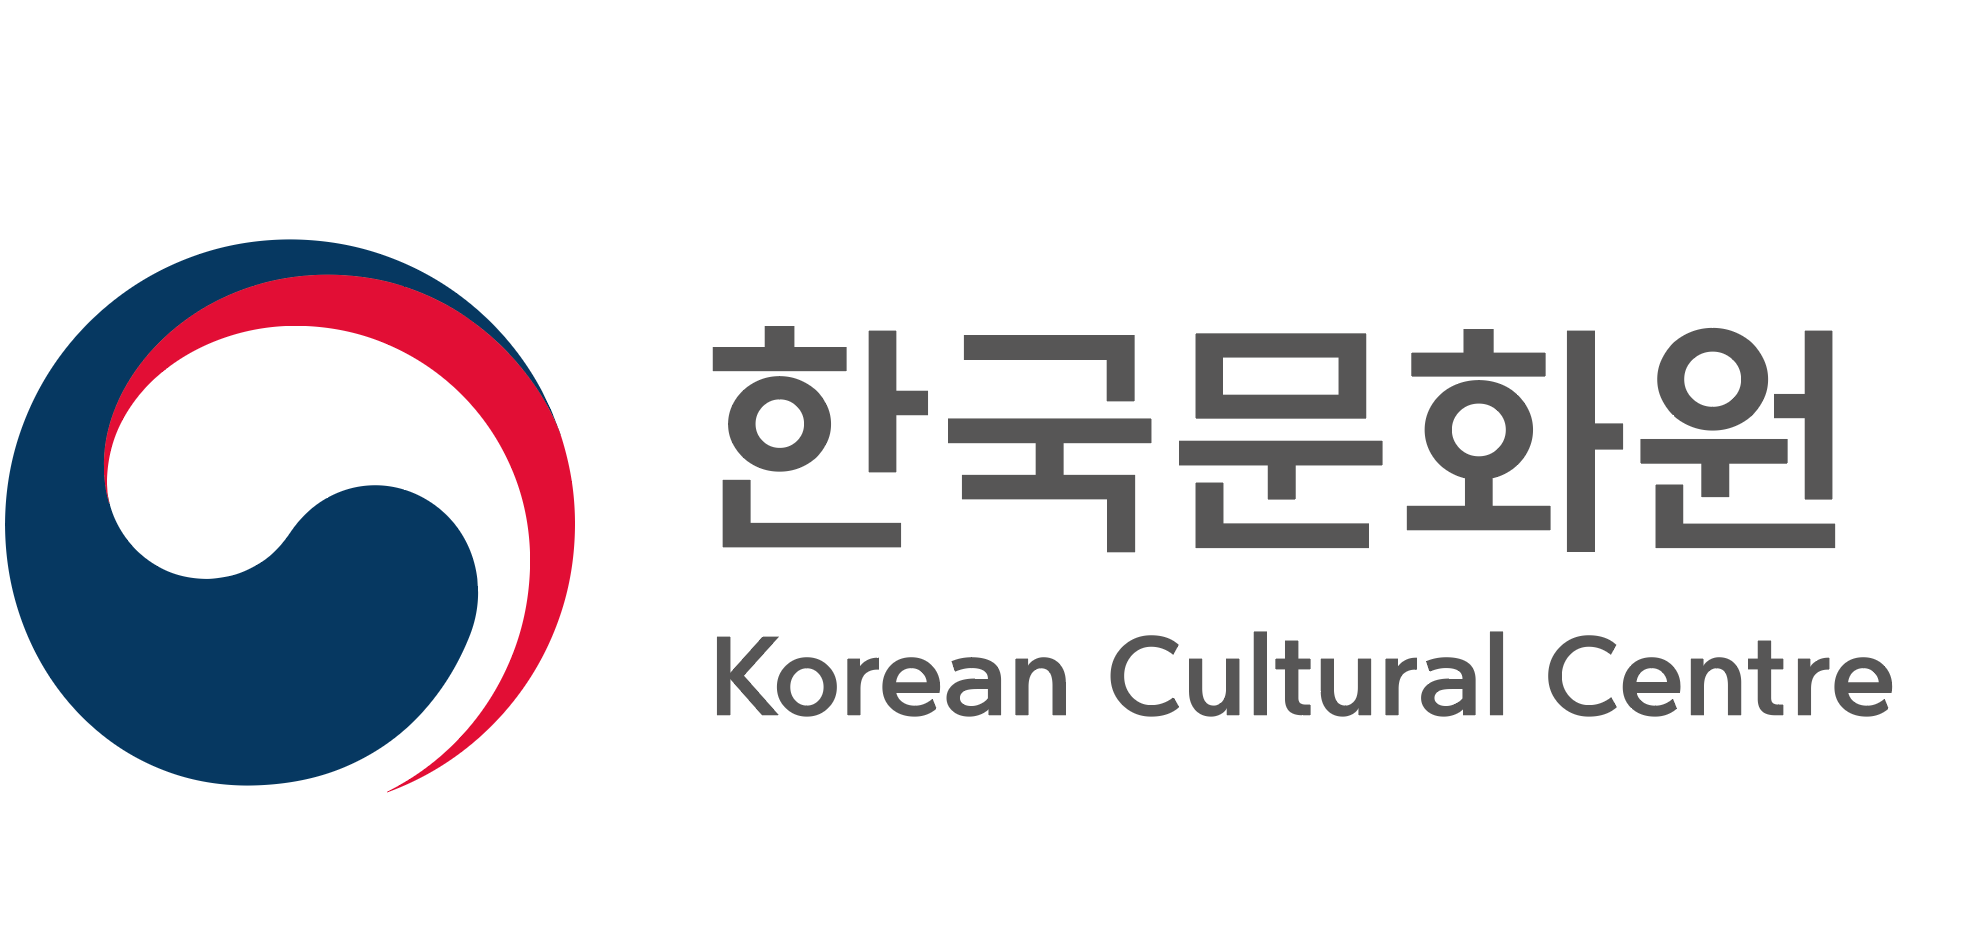 letters and Korean flag